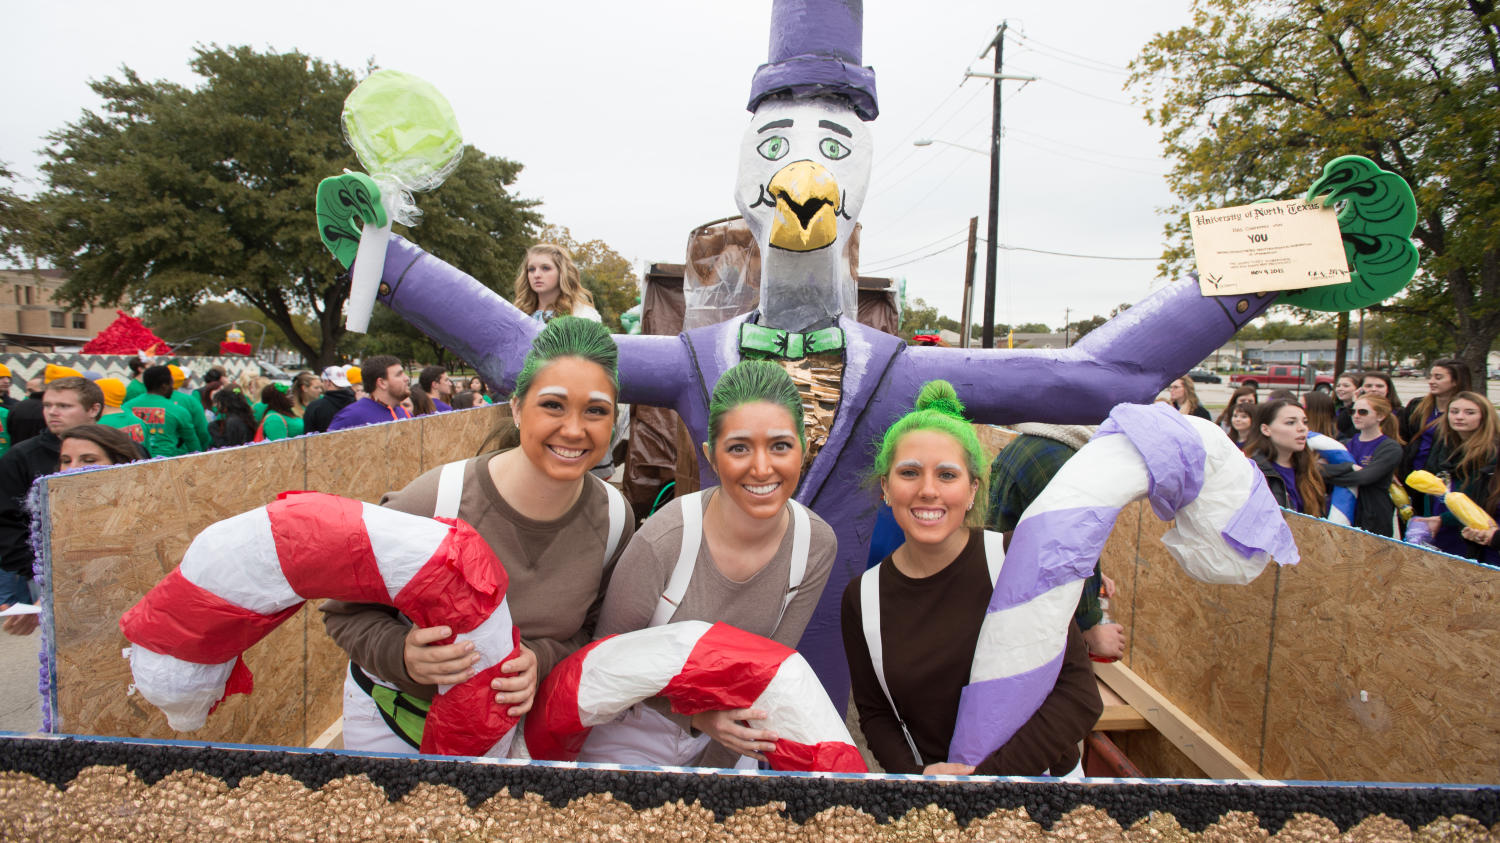 [Float from UNT Homecoming parade]                                                                                                      [Sequence #]: 1 of 1